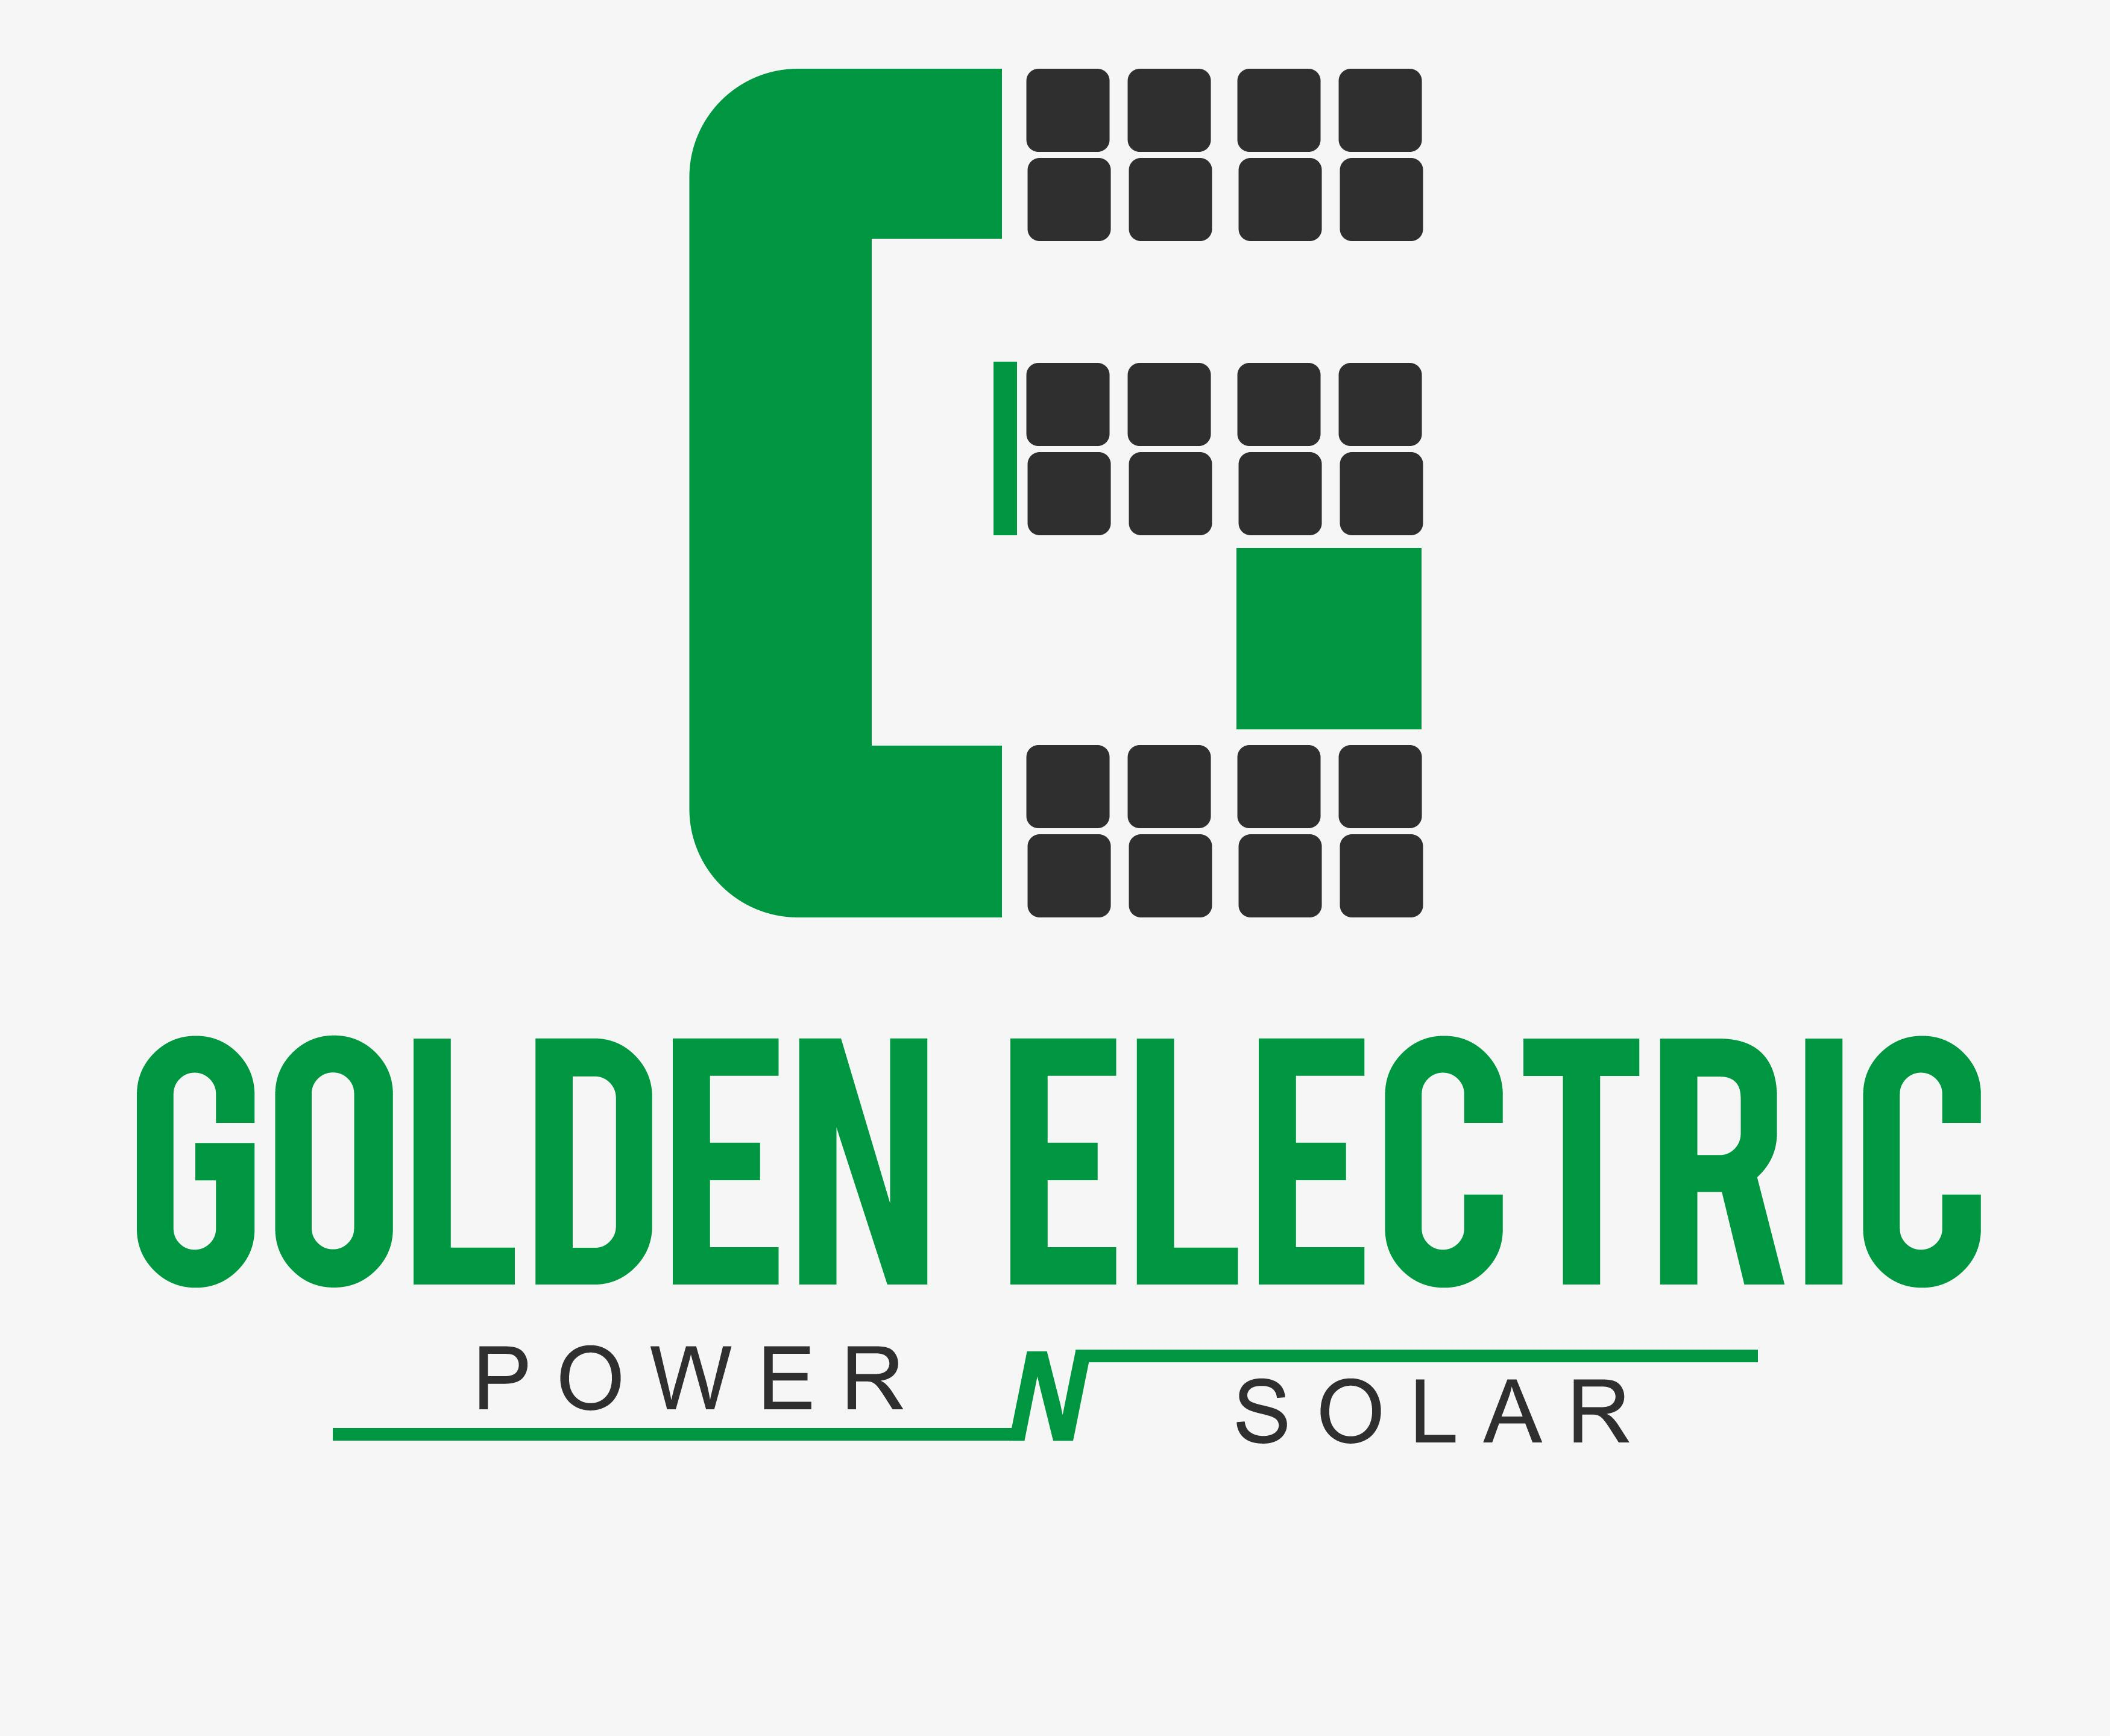 Golden Electric Power N Solar